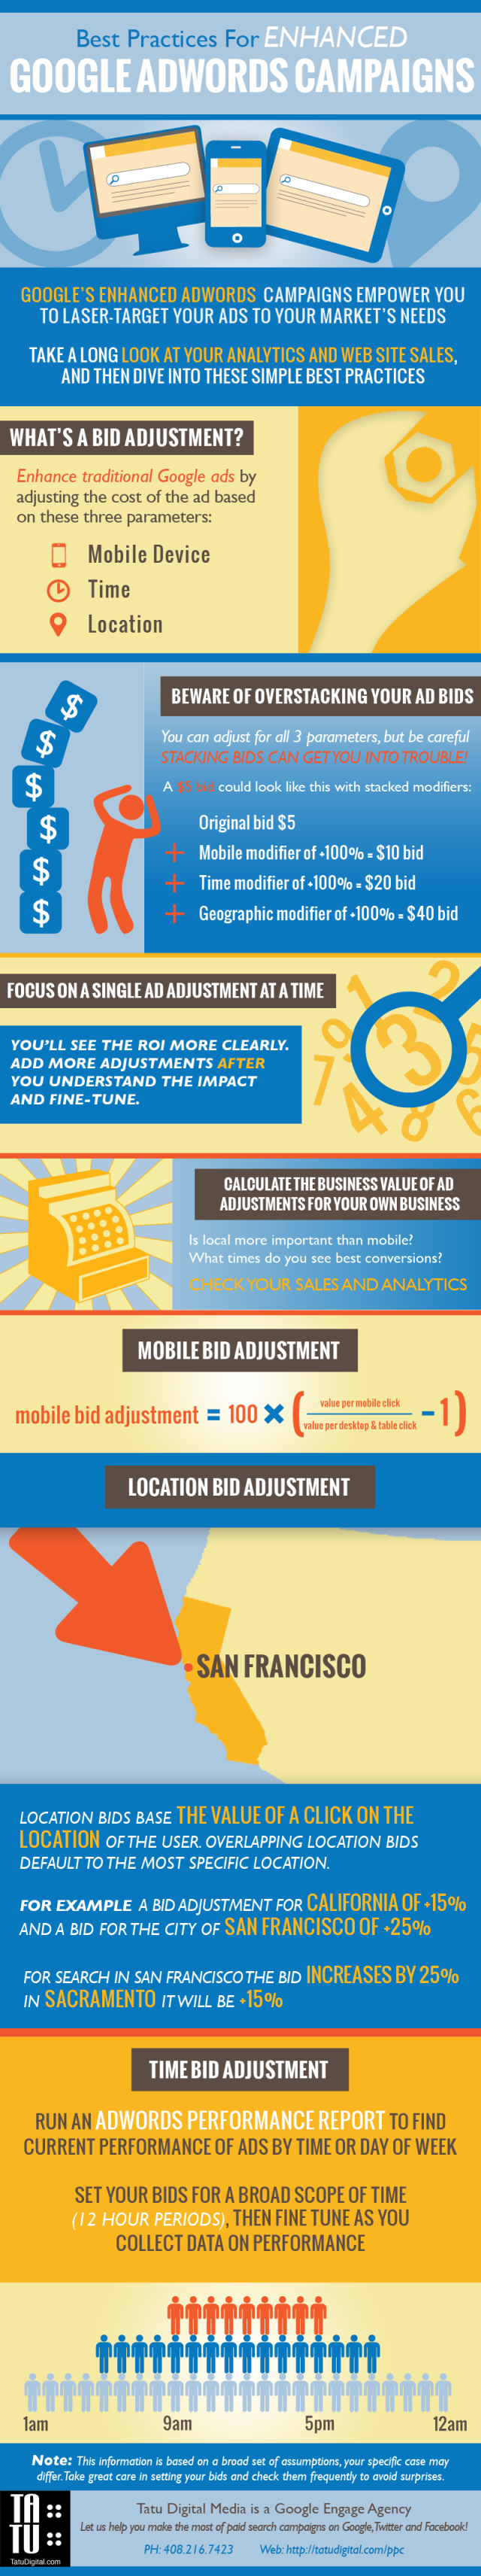 enhanced-adwords-best-practices-infographic